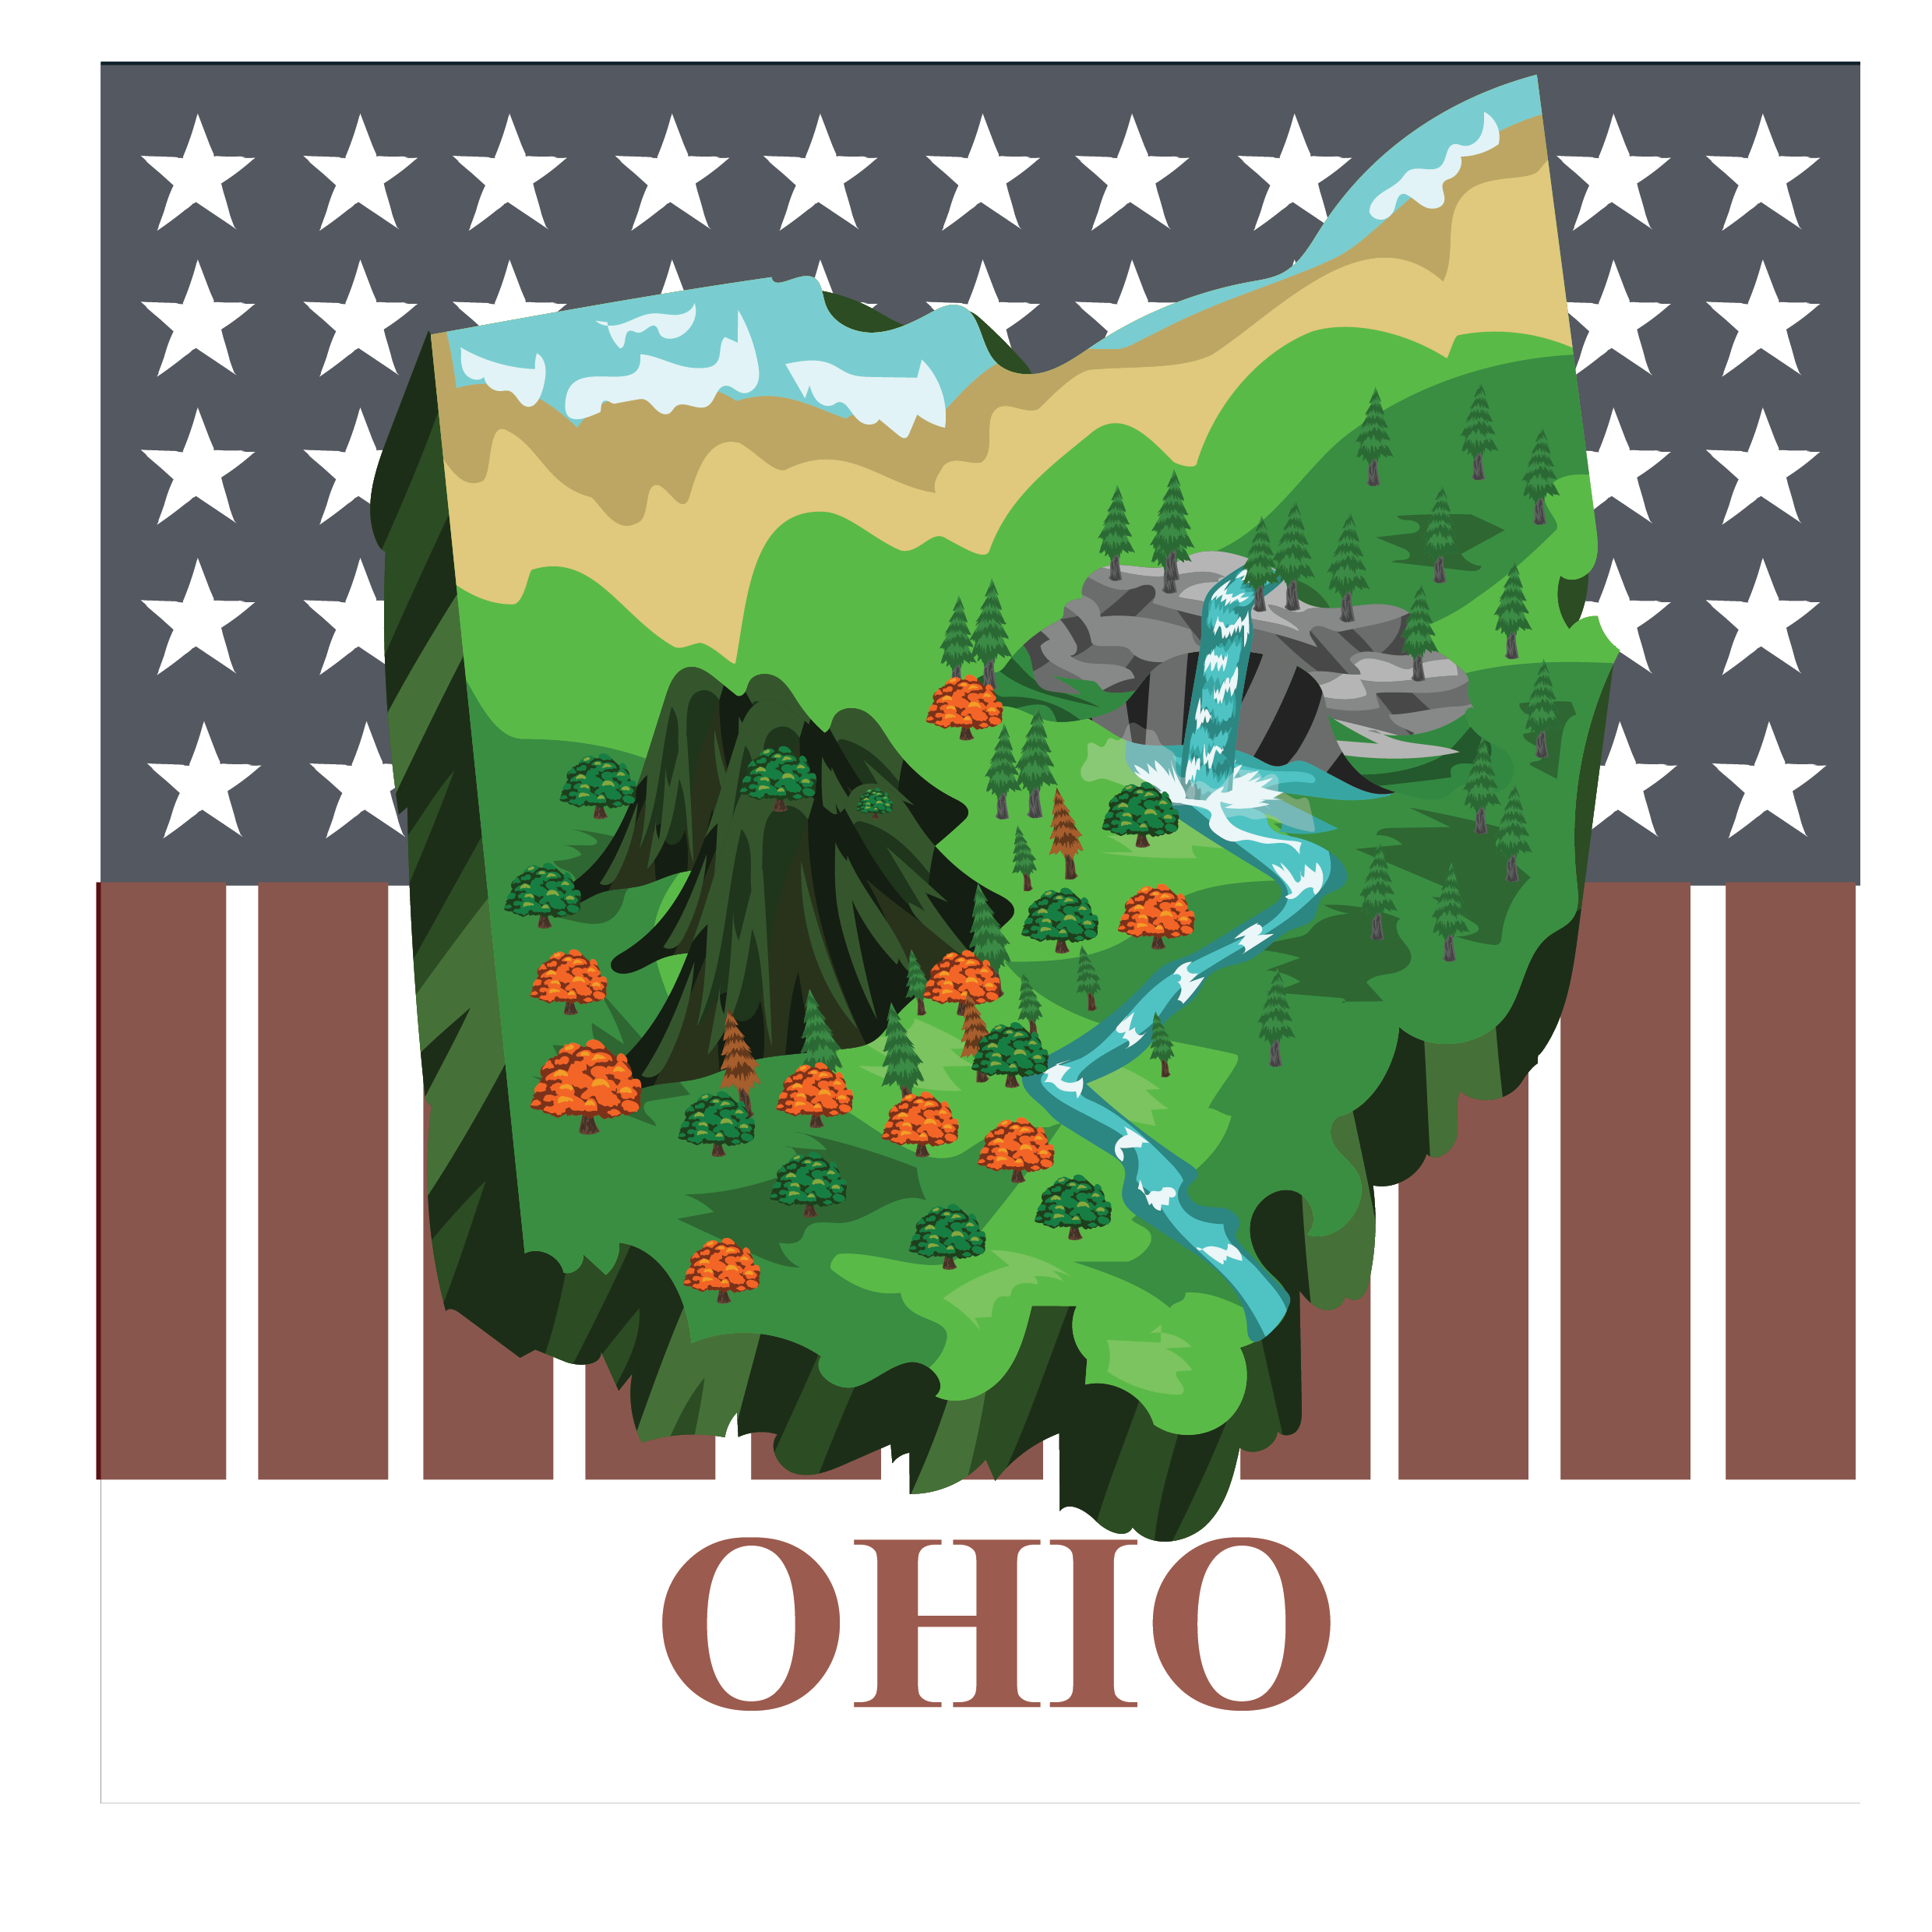 3d pictomap of Ohio